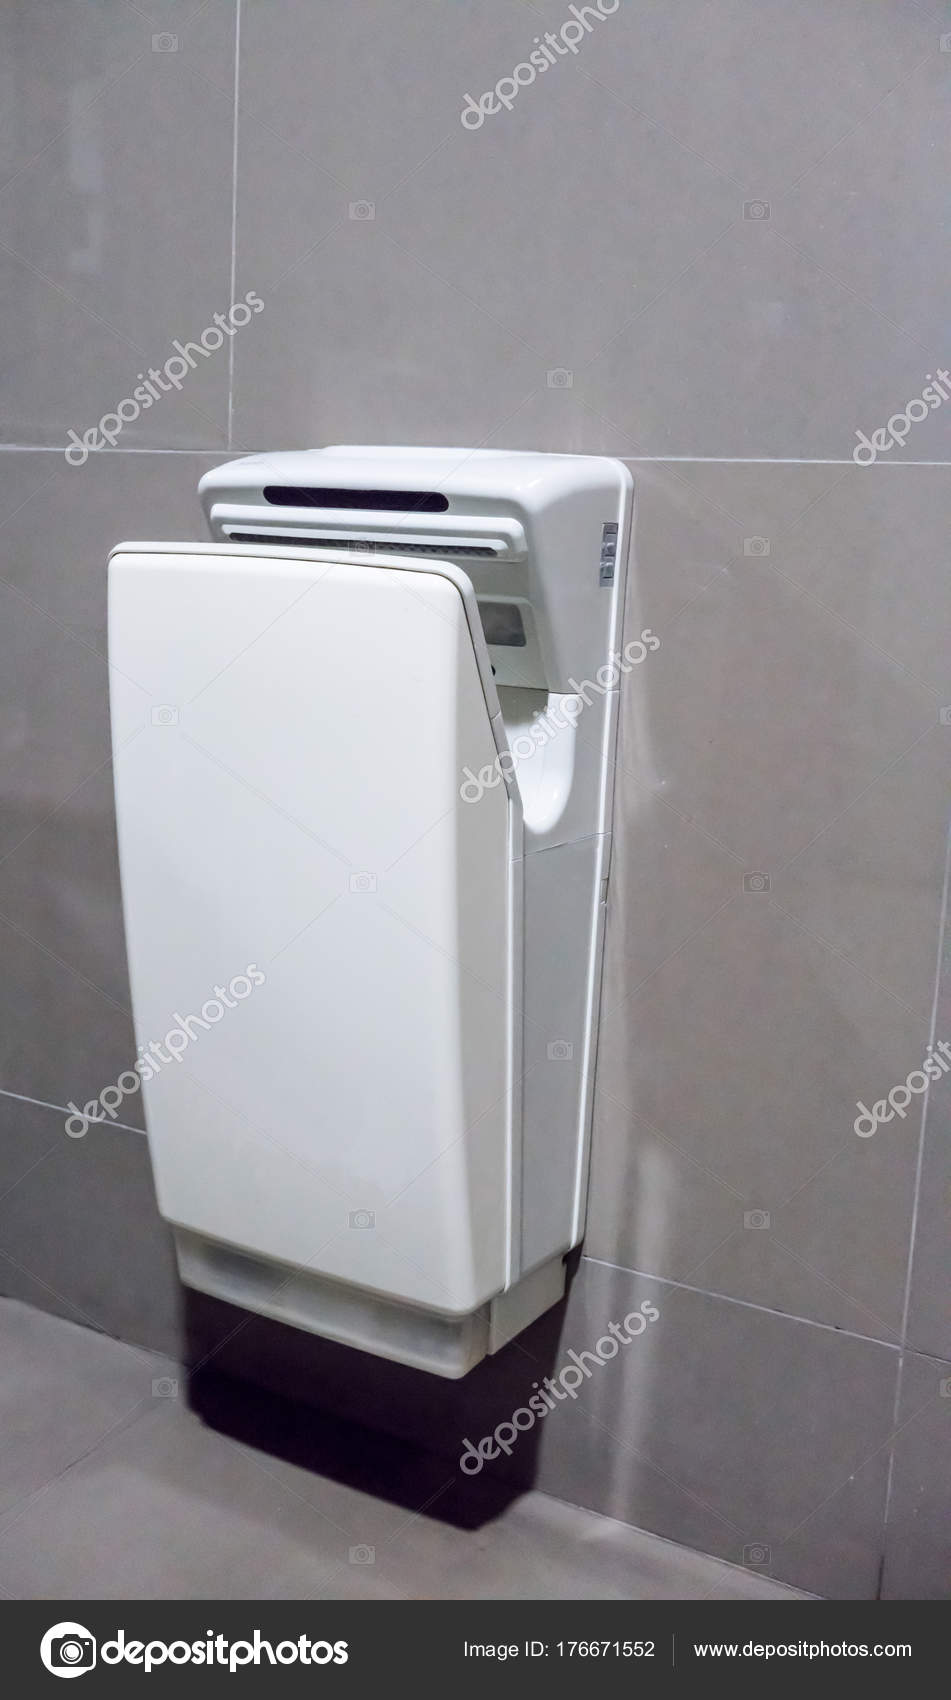 Händetrockner World Dryer Modern Vertical Hand Dryer In Public Restroom Stock Photo V74